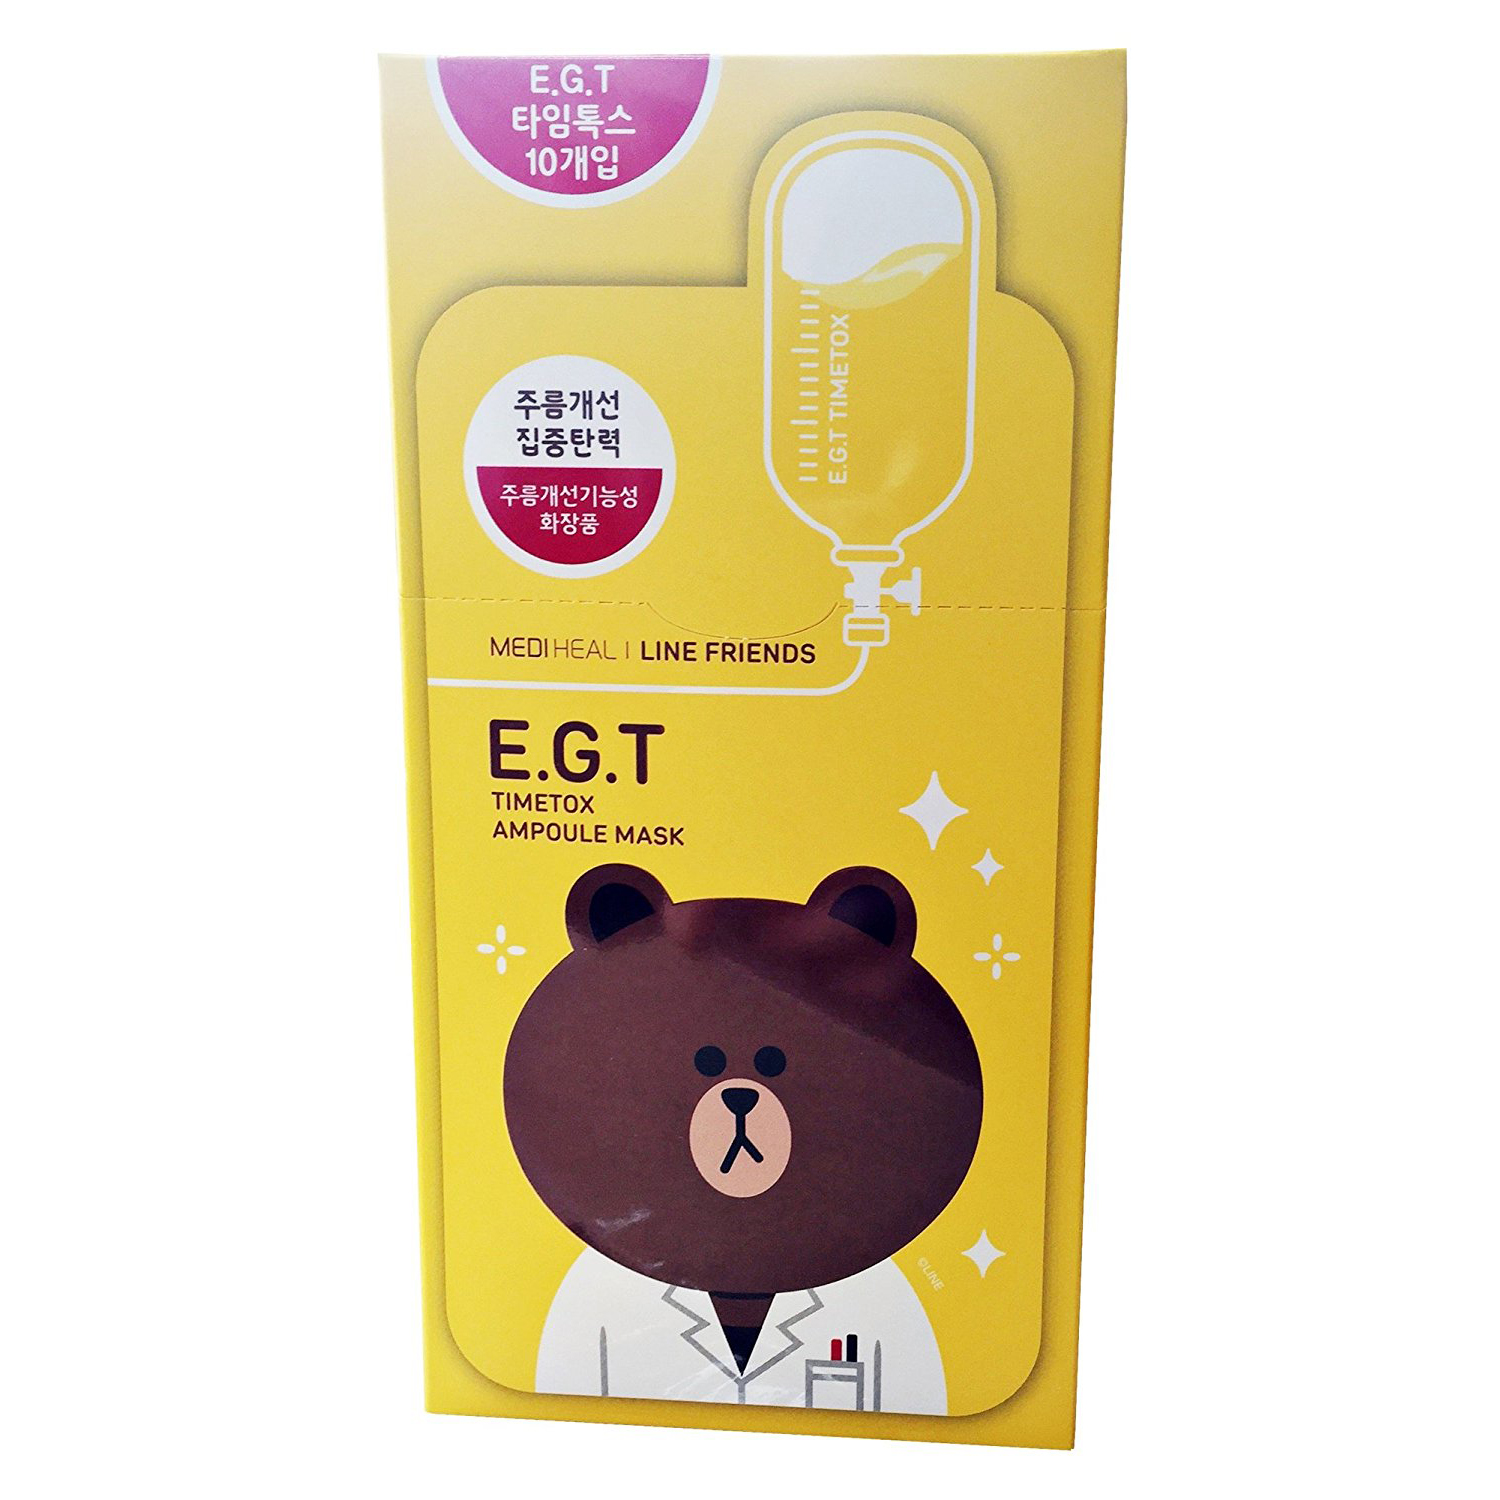 [MEDIHEAL] Line Friend E.G.T Timetox Ampoule Mask Sheet 27ml X 10 Pack